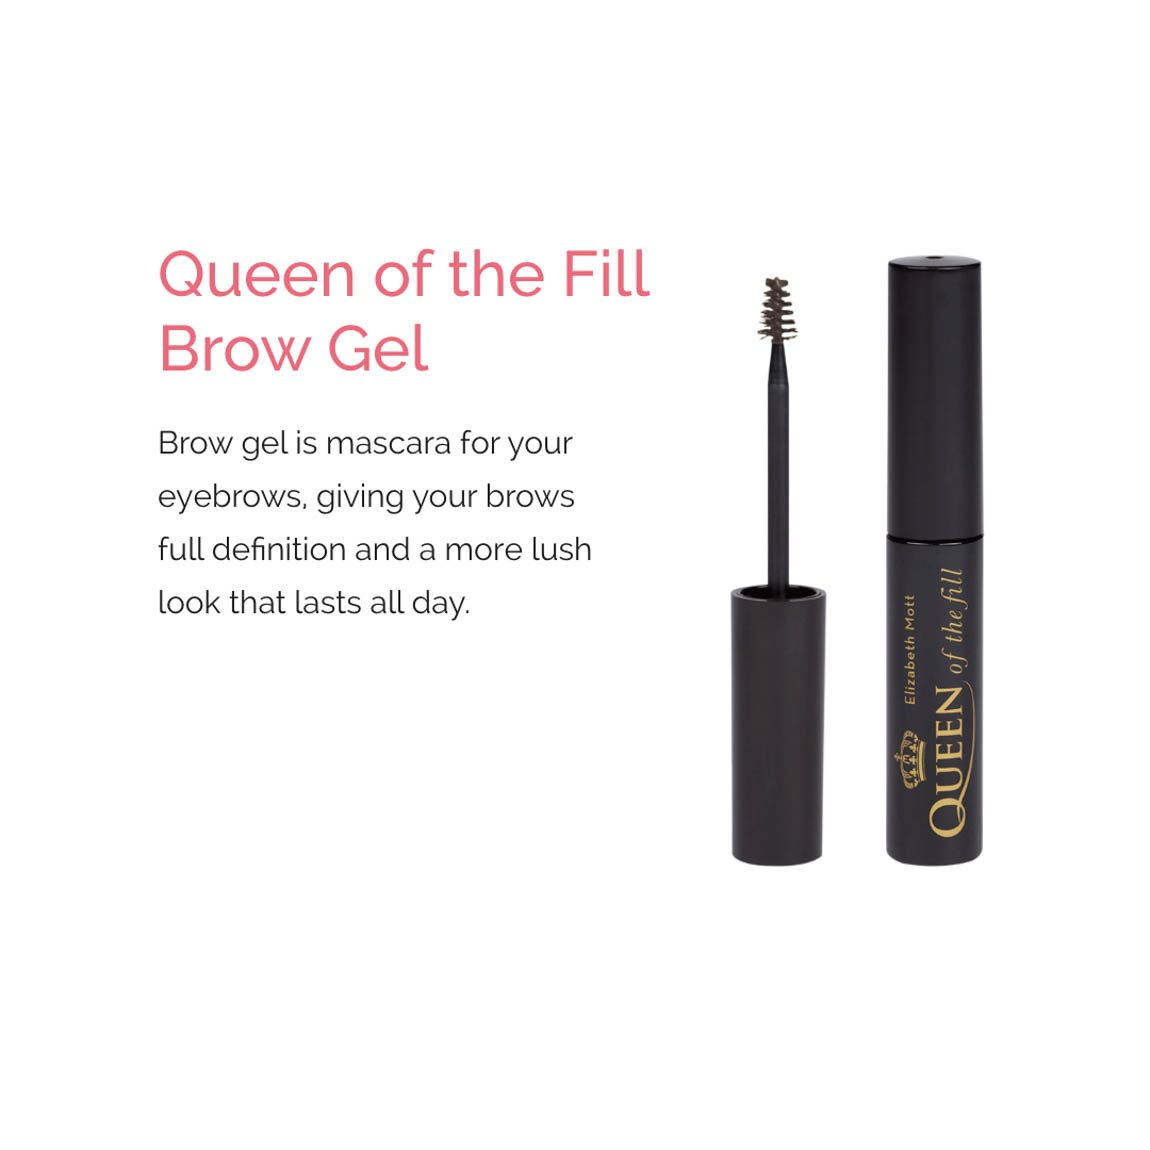 Queen of the Fill Brow Gel